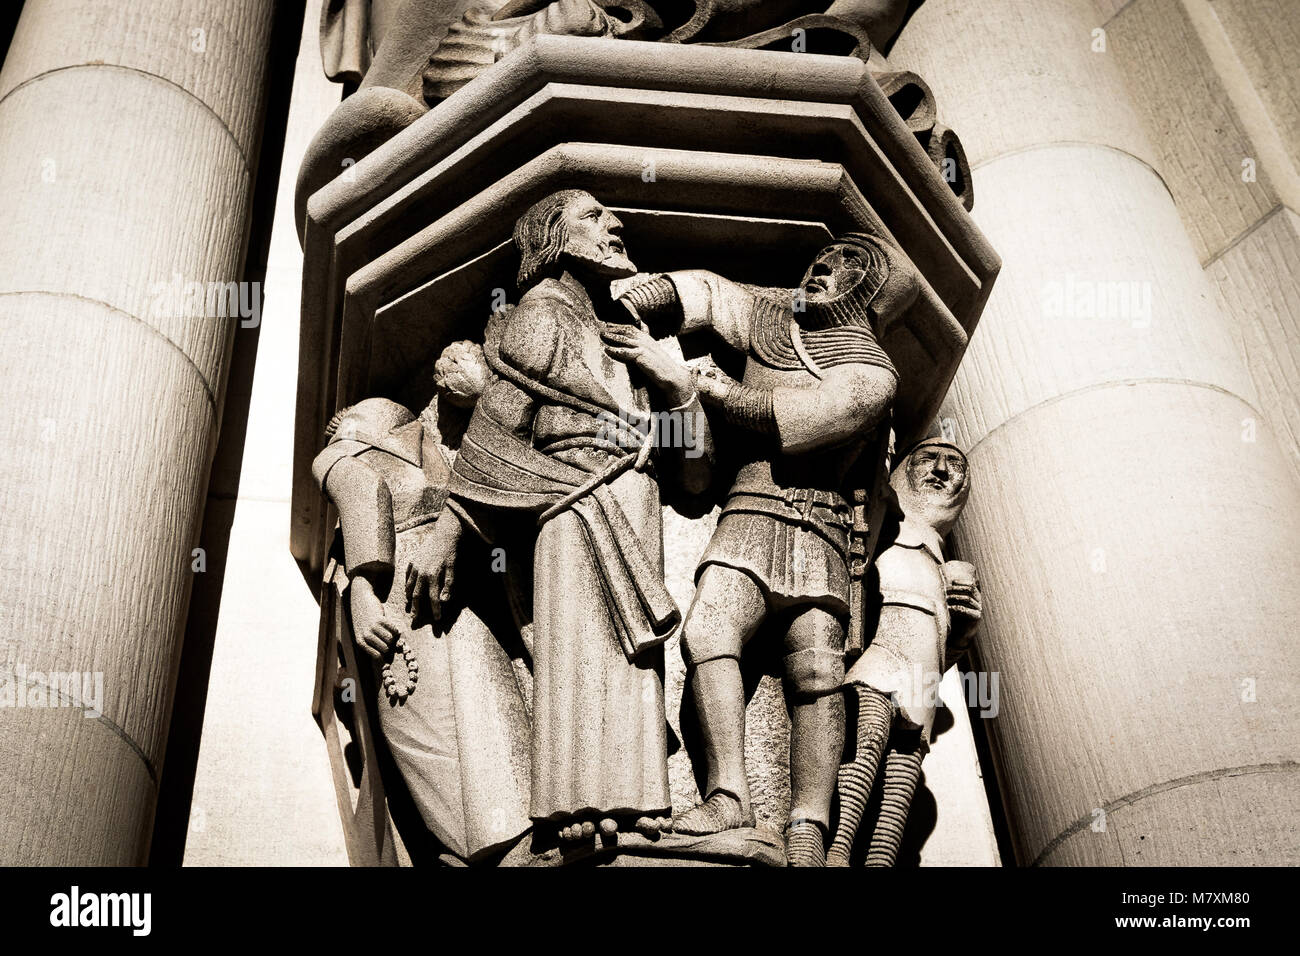 Details of the North Tower Portal of The Cathedral Church of St. John the Divine in Manhattan. - Stock Image